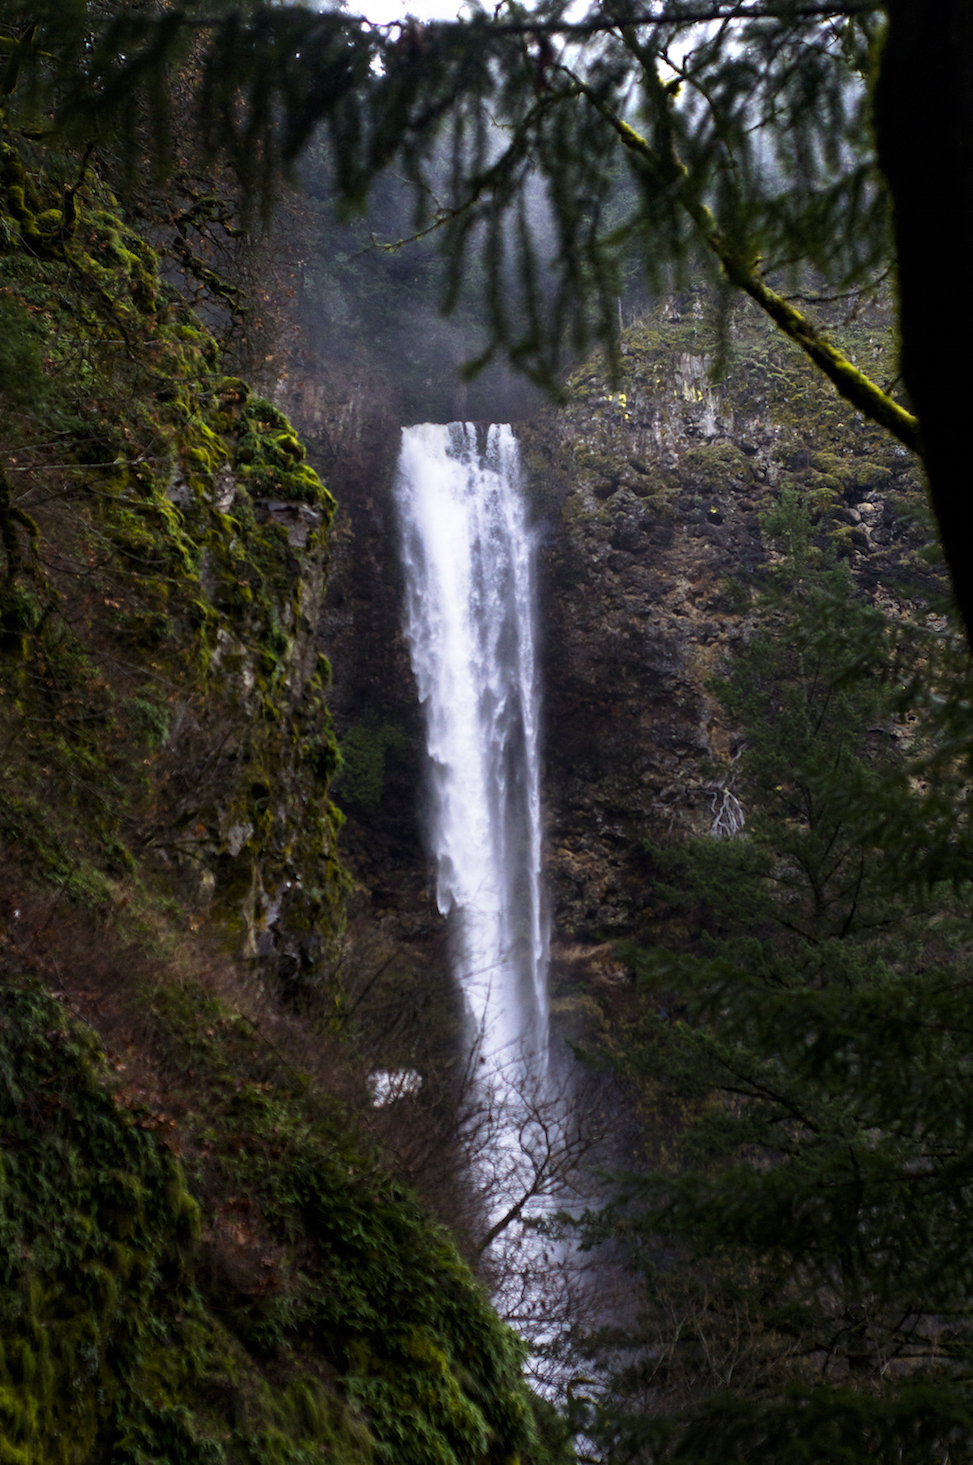 Bridal Veil, multnomah falls, oregon